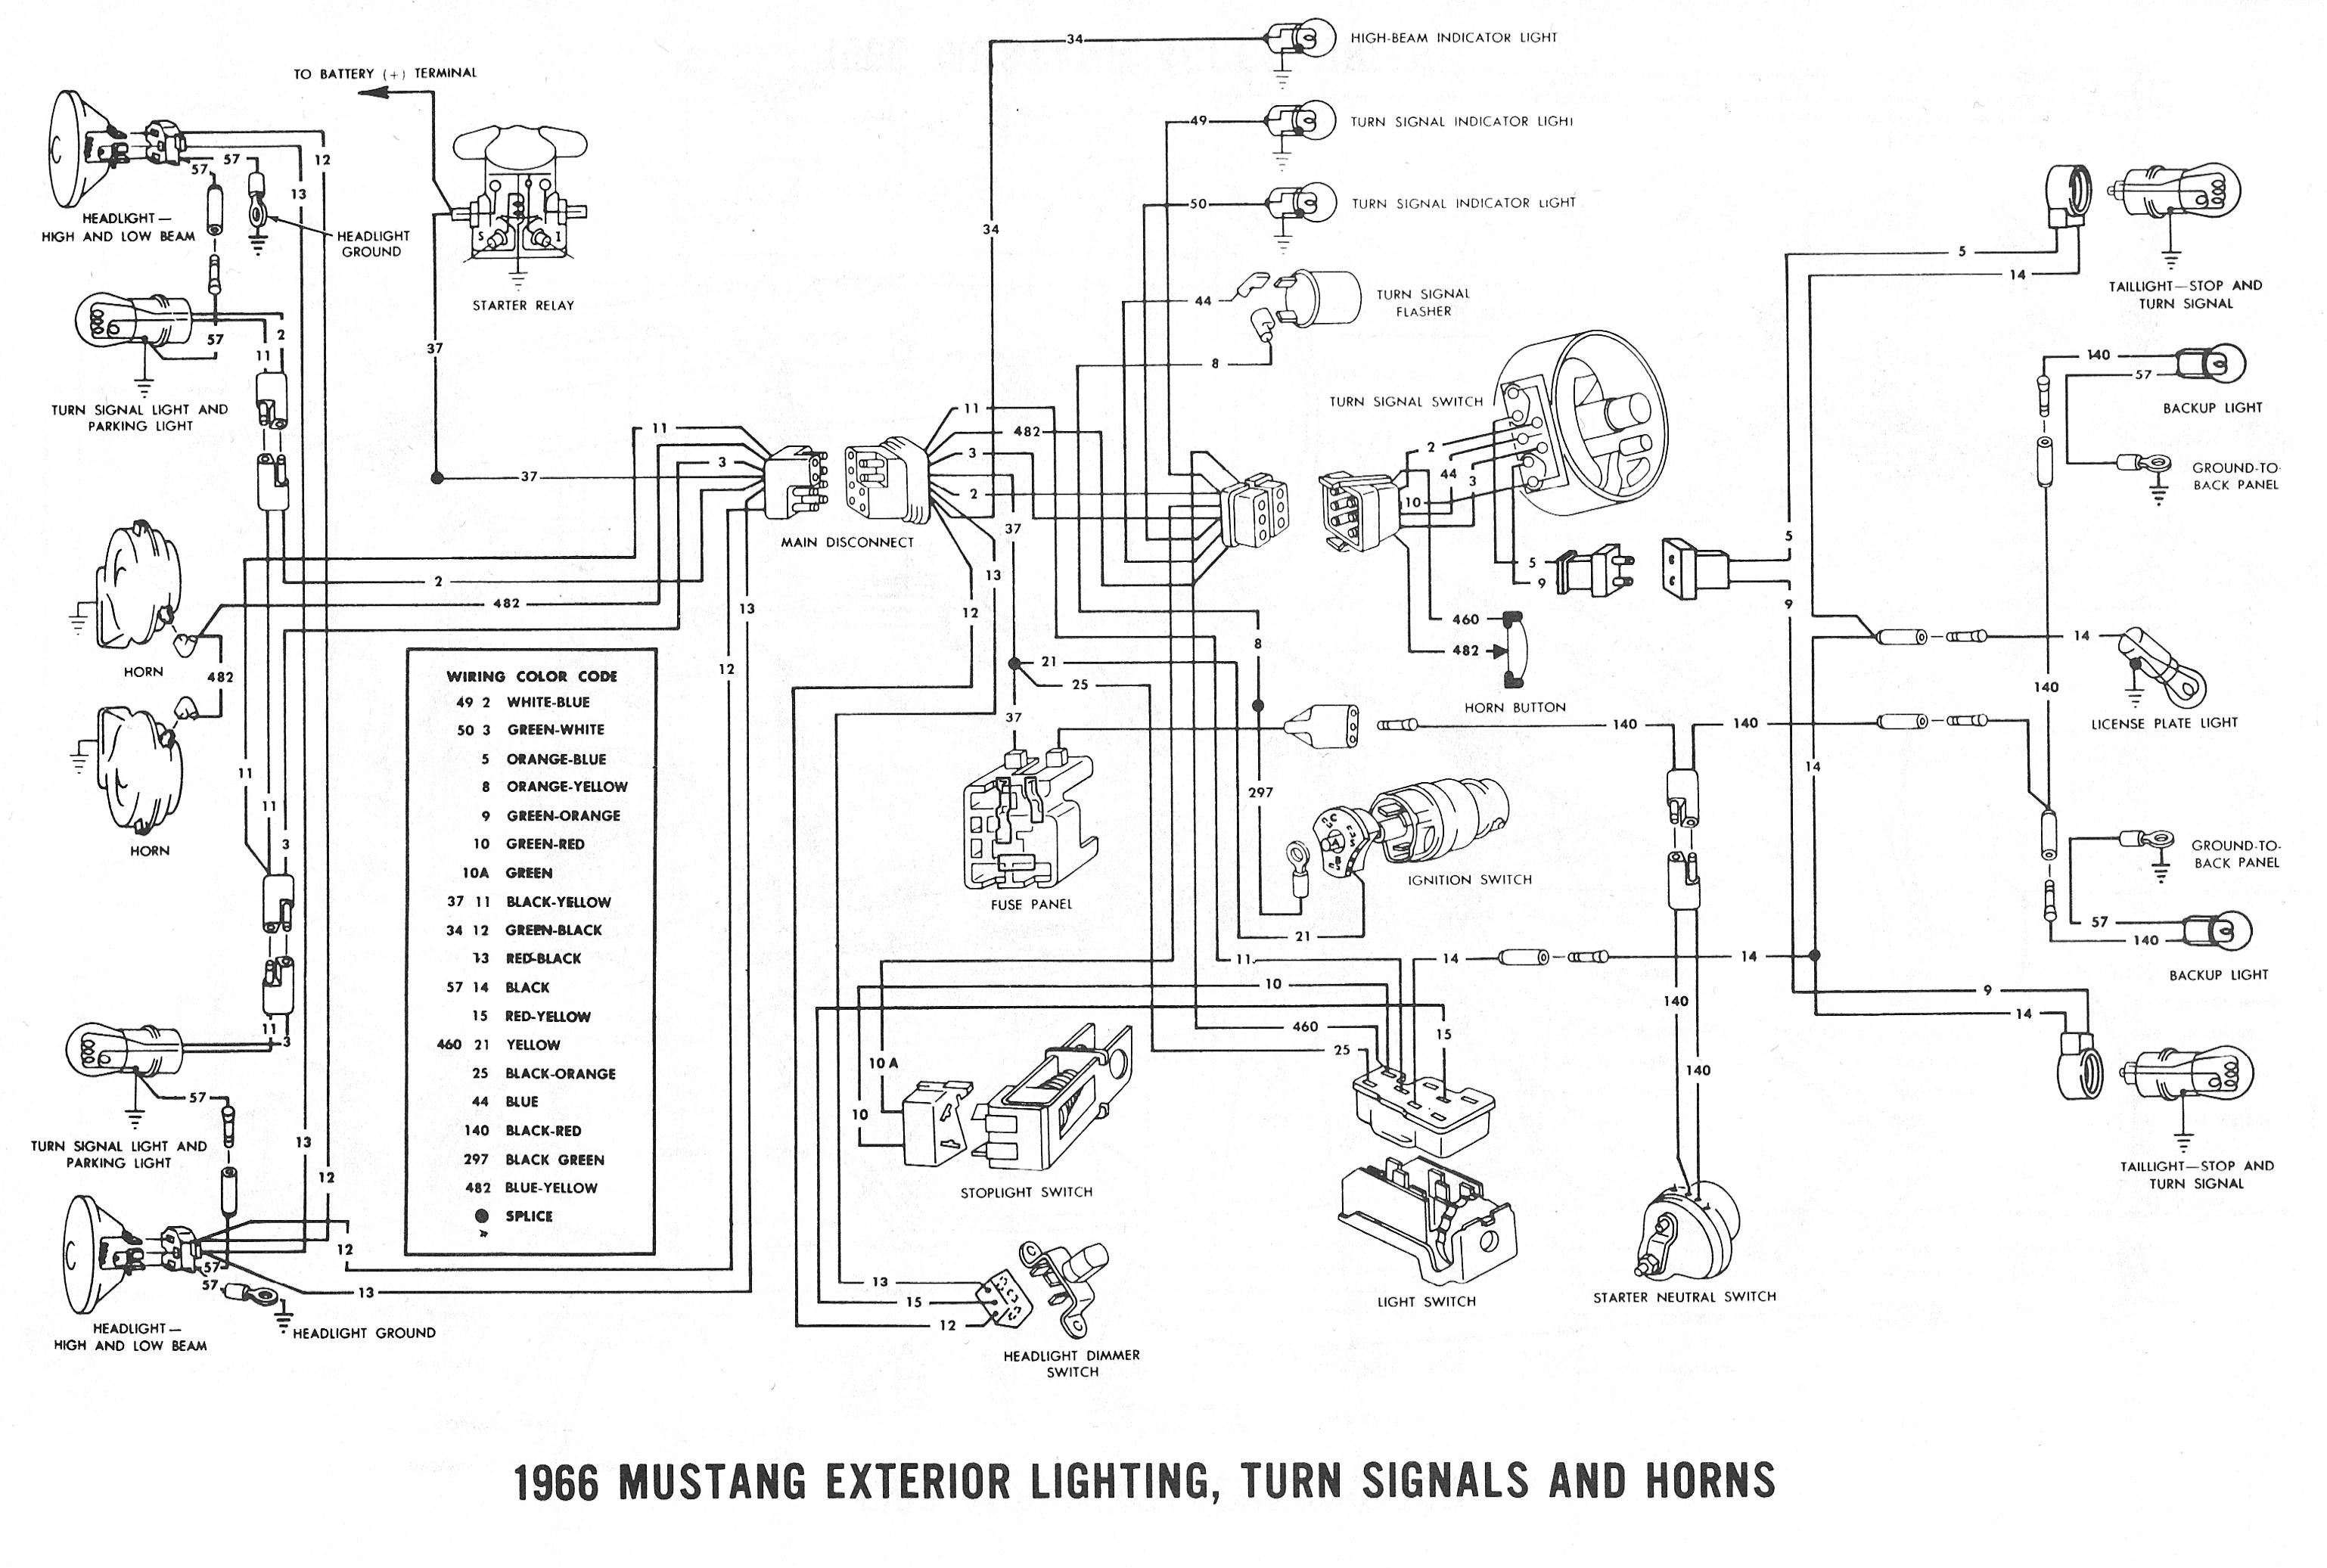 Bose Earbud Wiring Diagram Sample